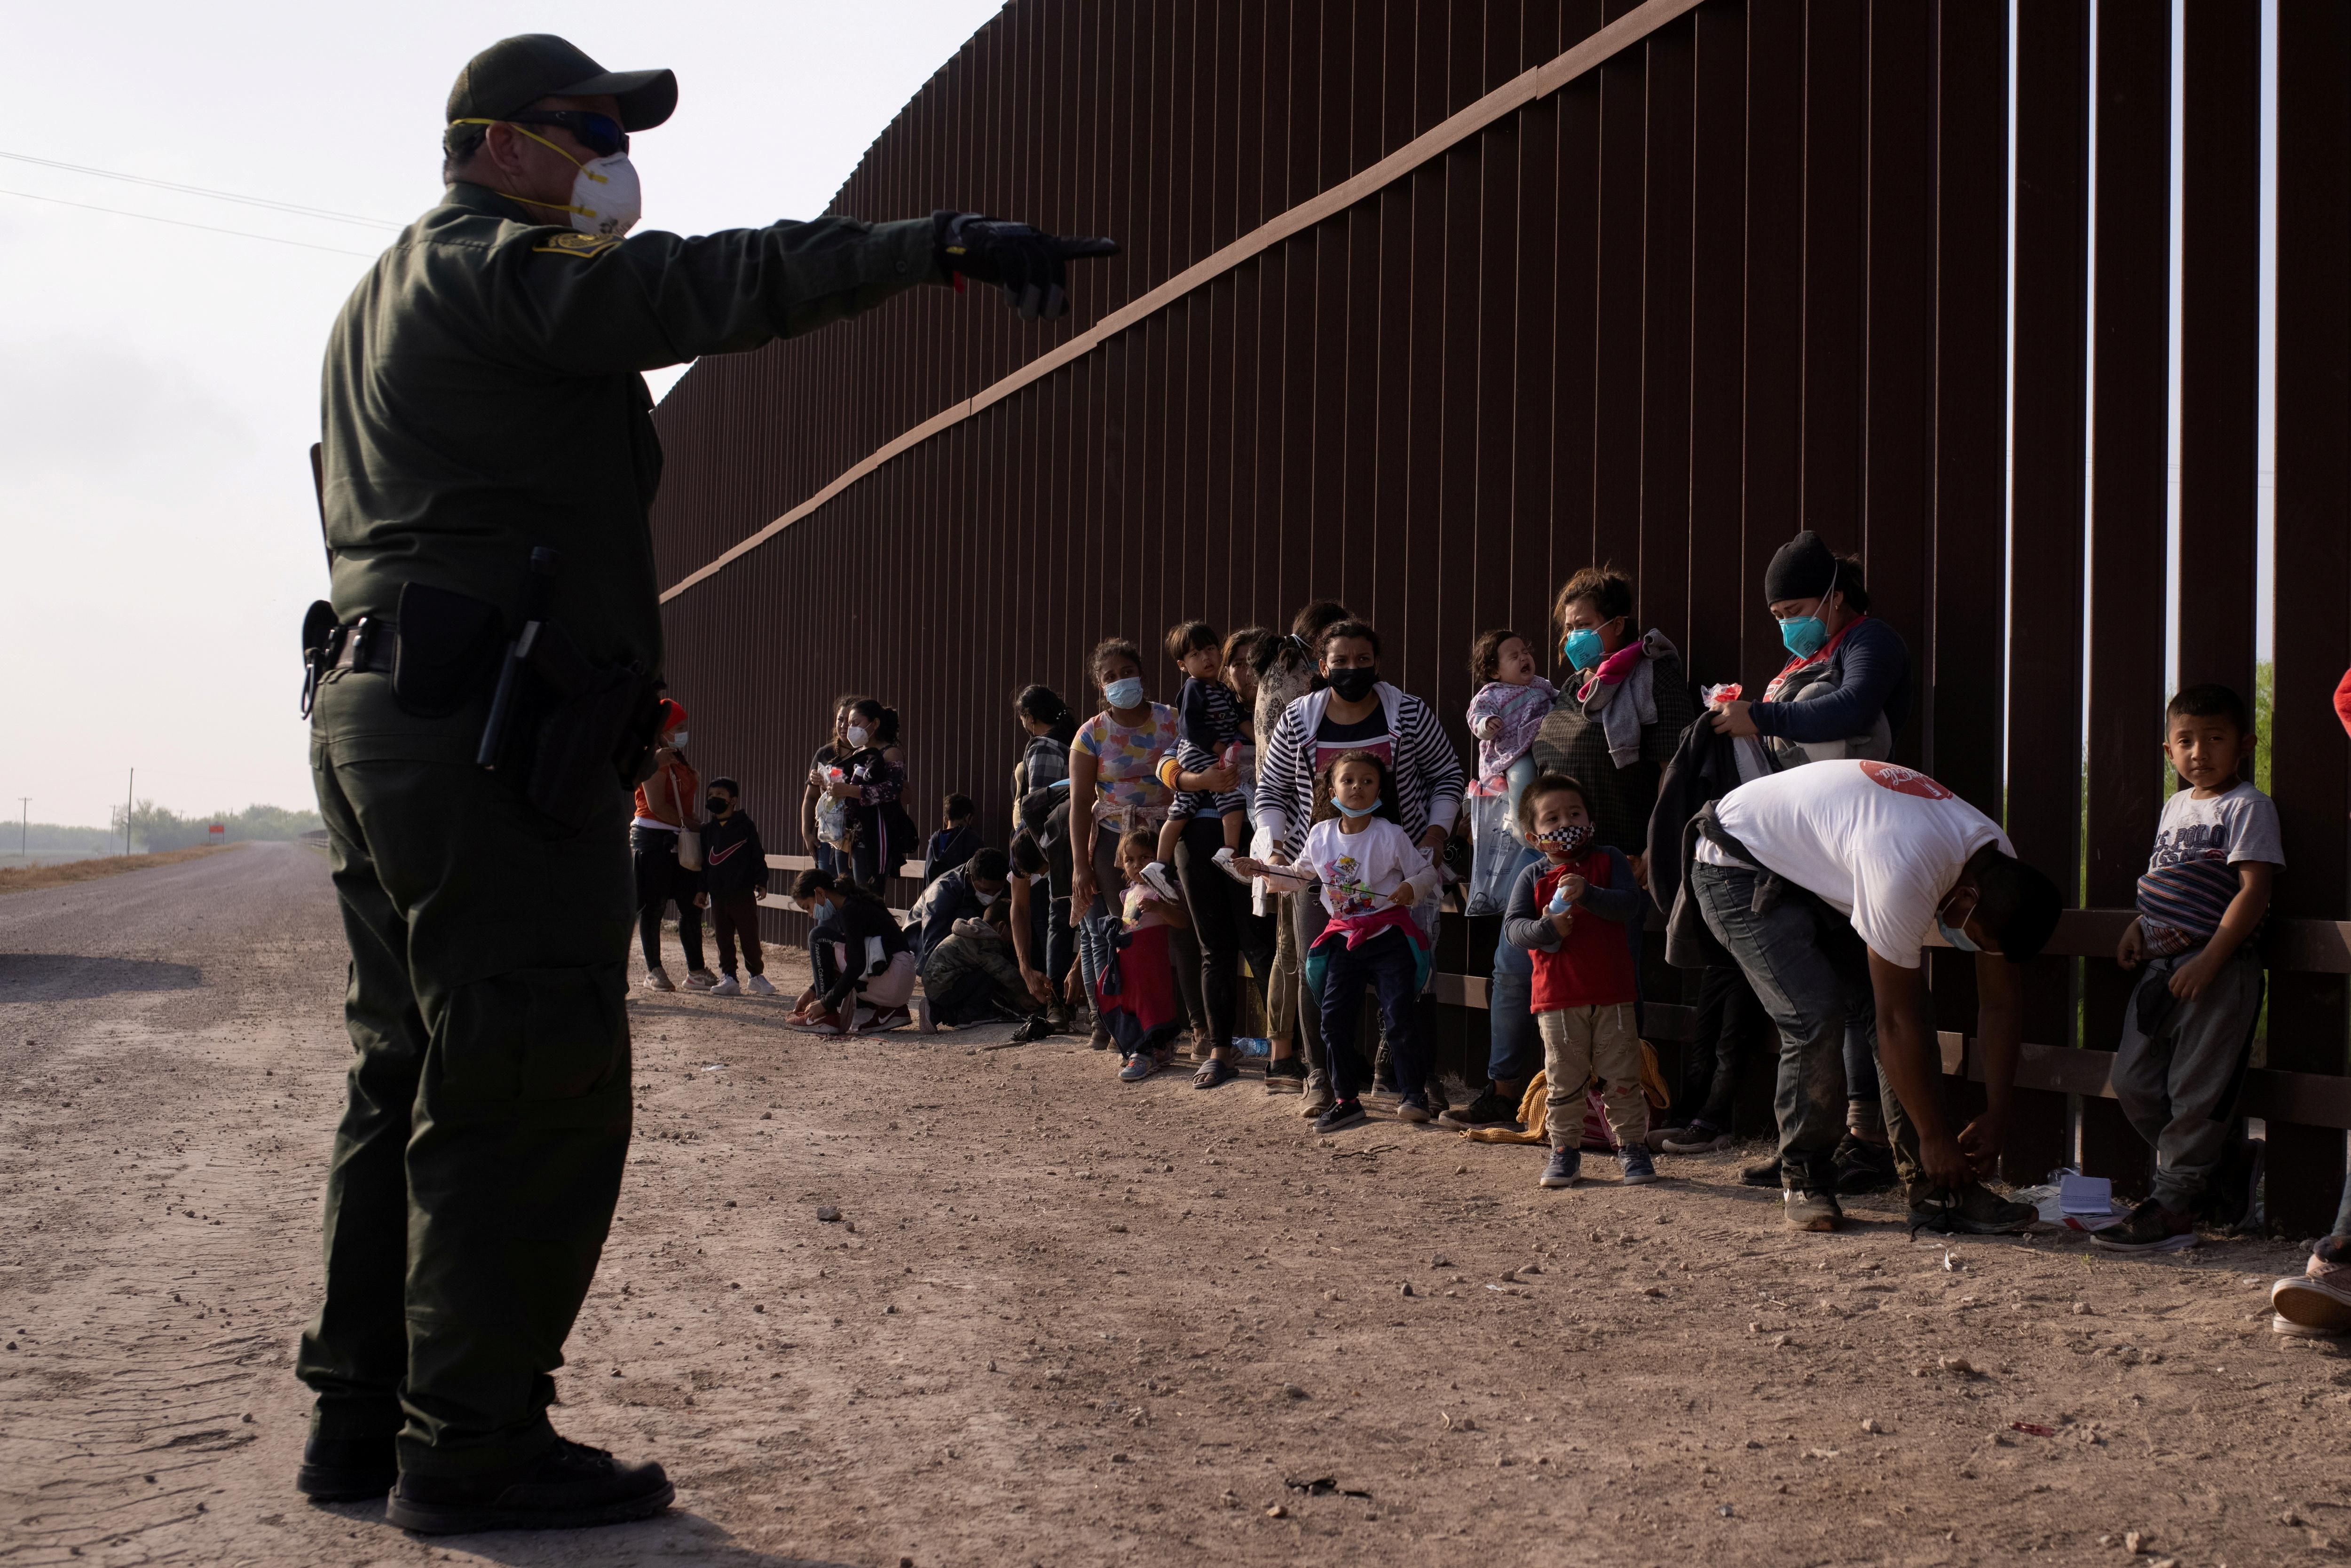 A U.S. Border Patrol agent instructs asylum-seeking migrants as they line up along the border wall after crossing the Rio Grande river into the United States from Mexico on a raft, in Penitas, Texas, U.S., March 17, 2021.